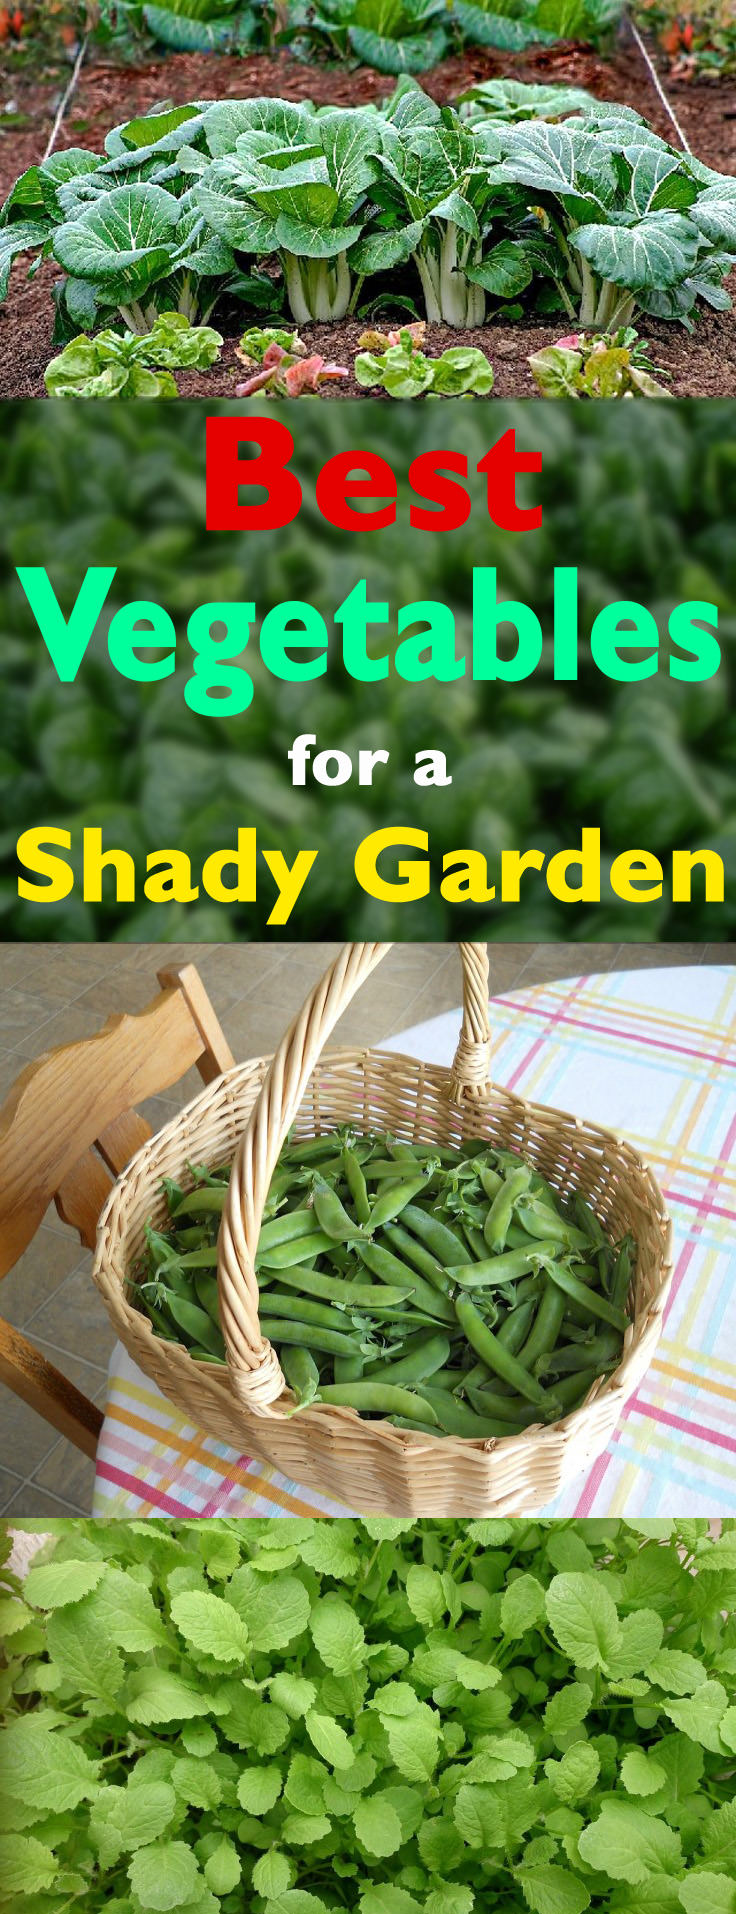 Growing Edibles In A Shady Space Of Your Garden Is Possible, See The Best  Vegetables